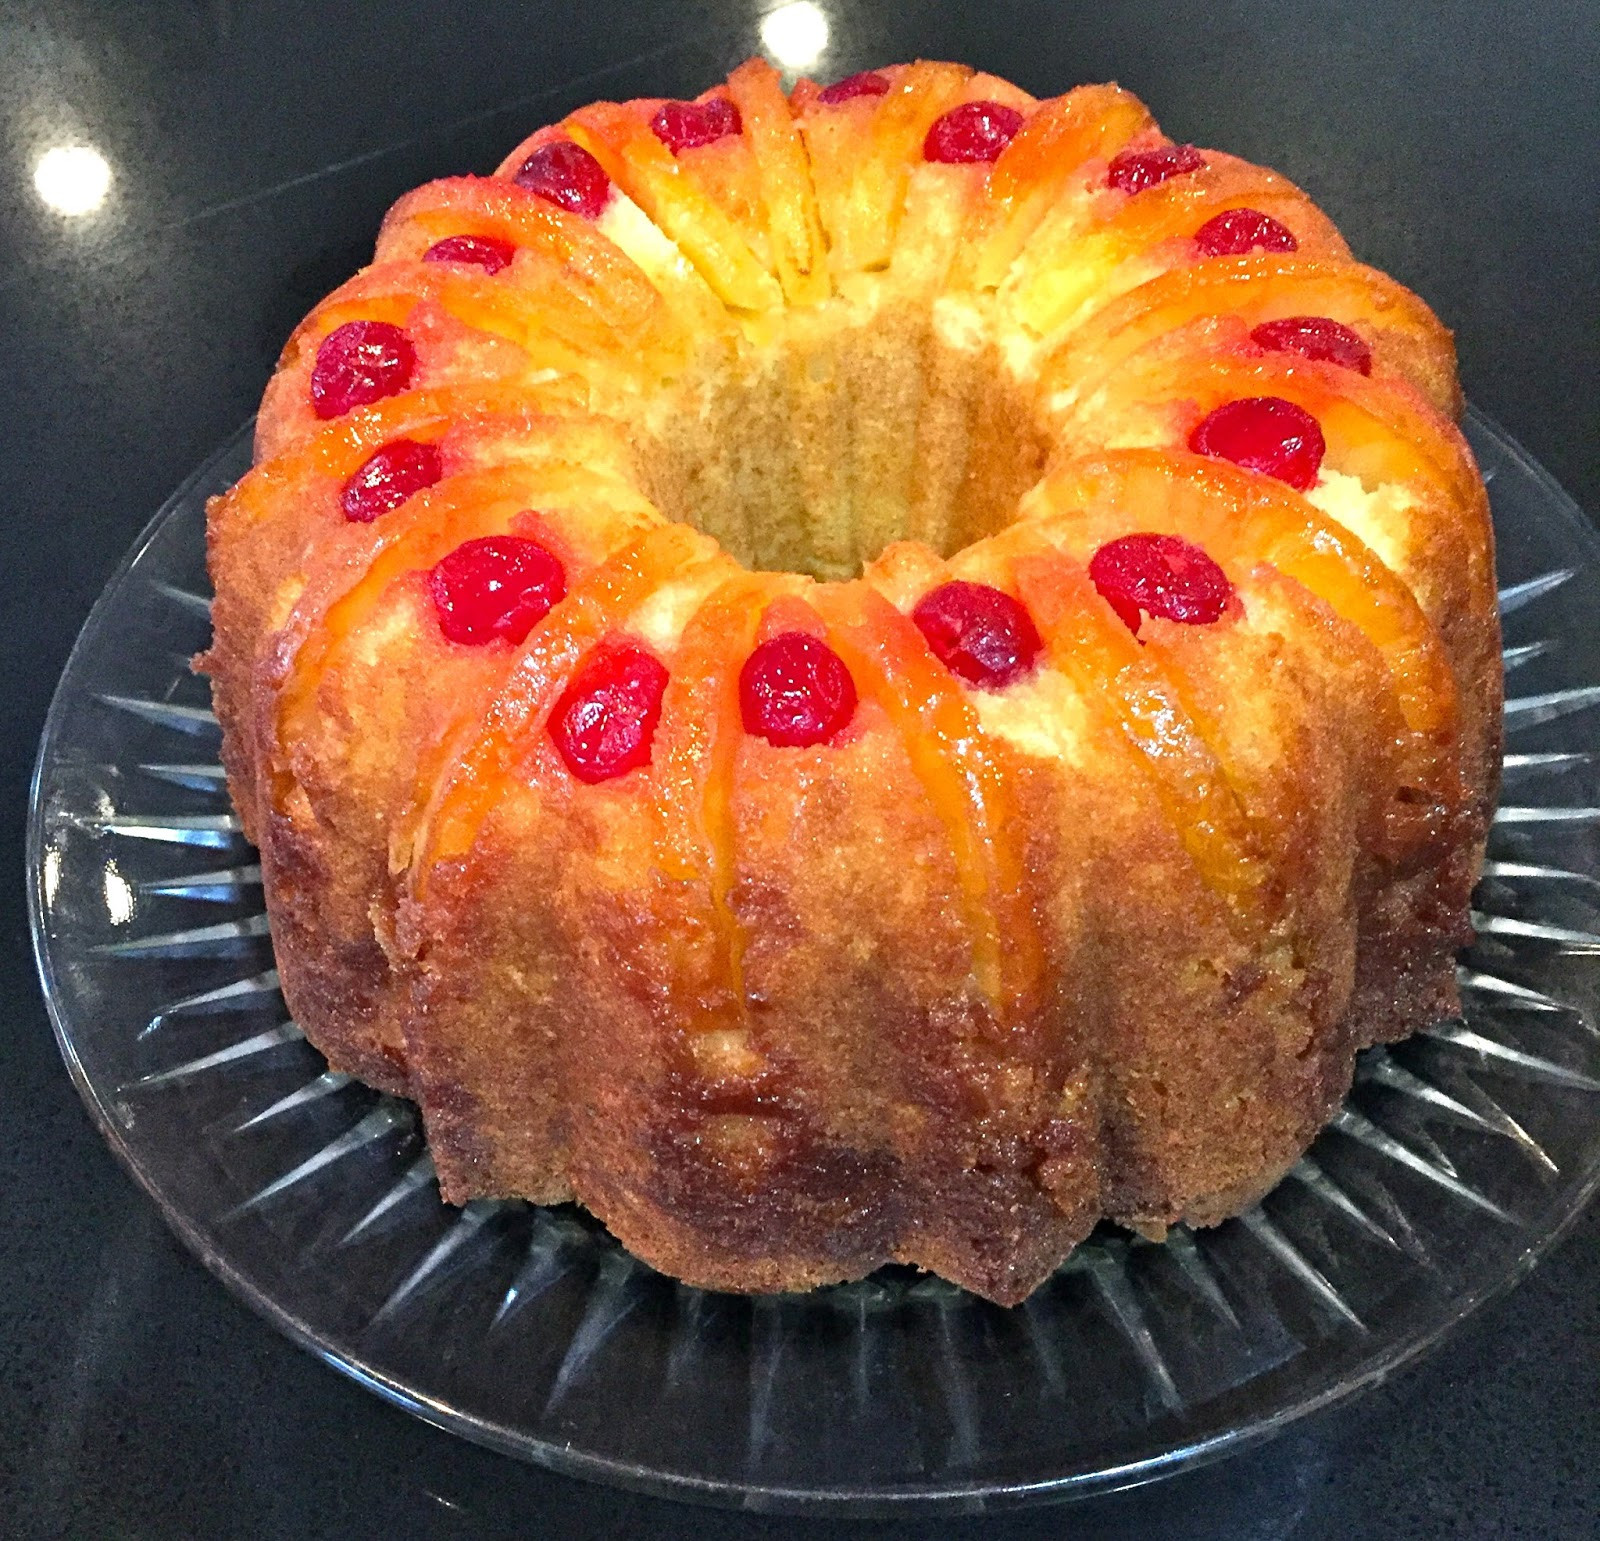 Upside Down Pineapple Bundt Cake  My Mother s Apron Strings Upside Down Pineapple Bundt Cake